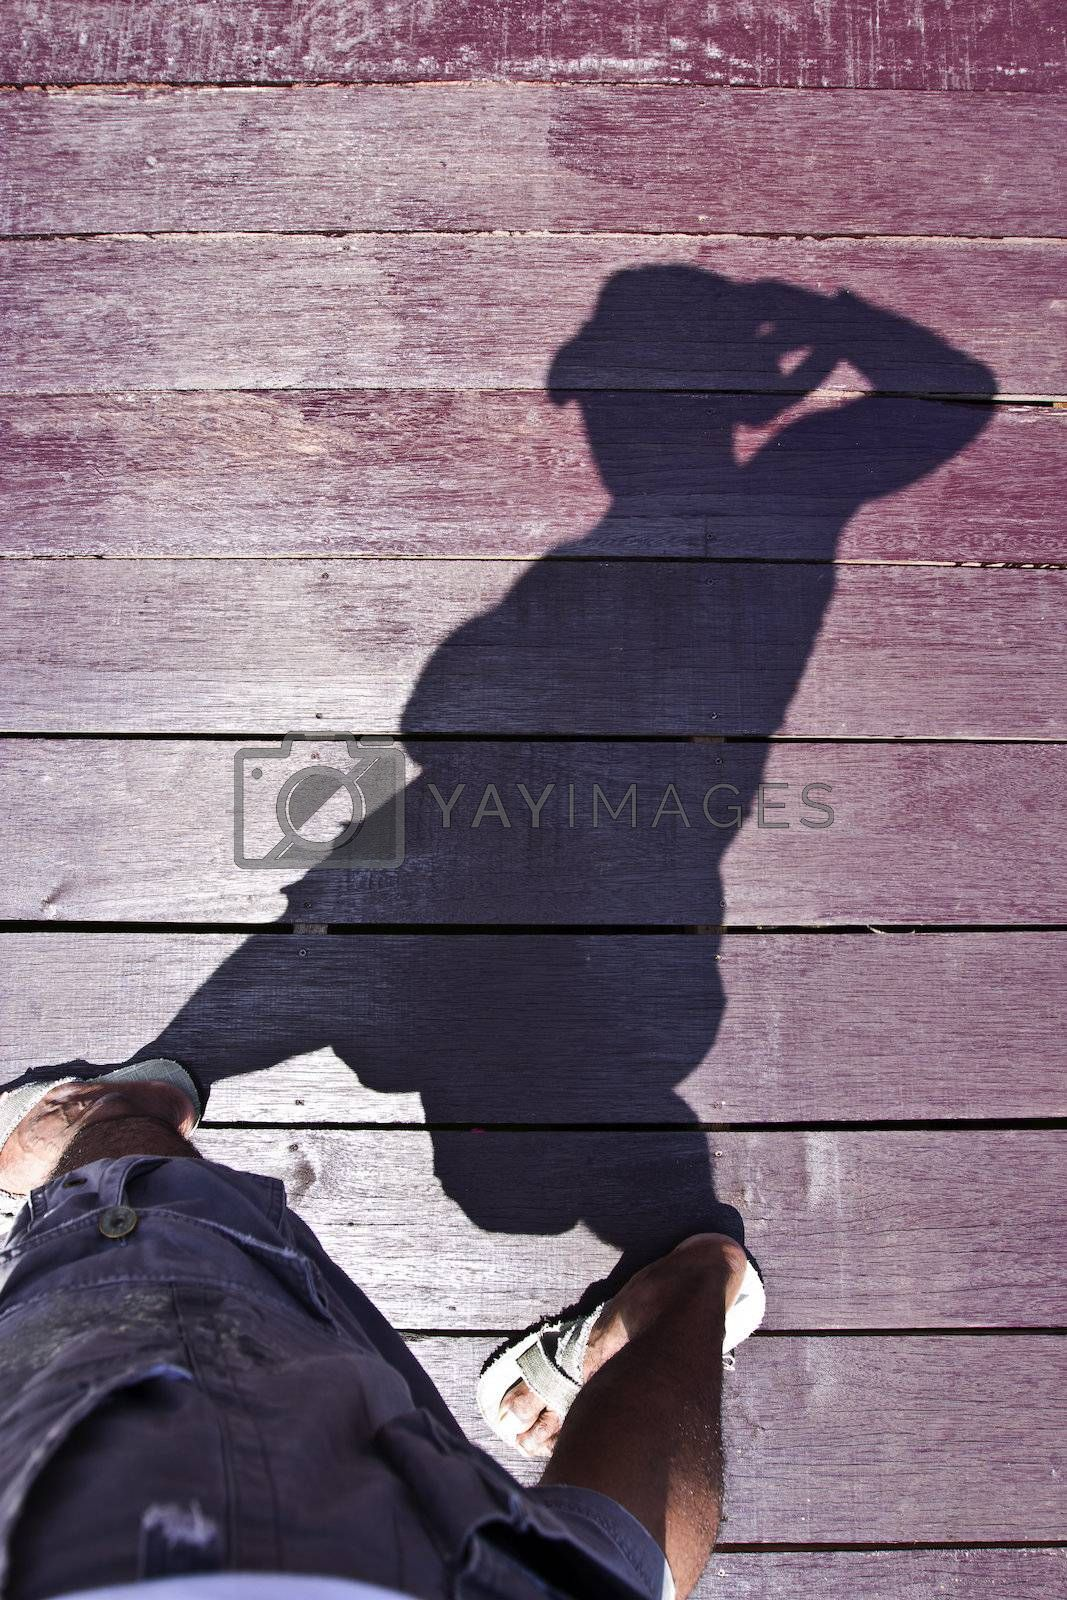 Human with the sunlight shadow on the wooden platform